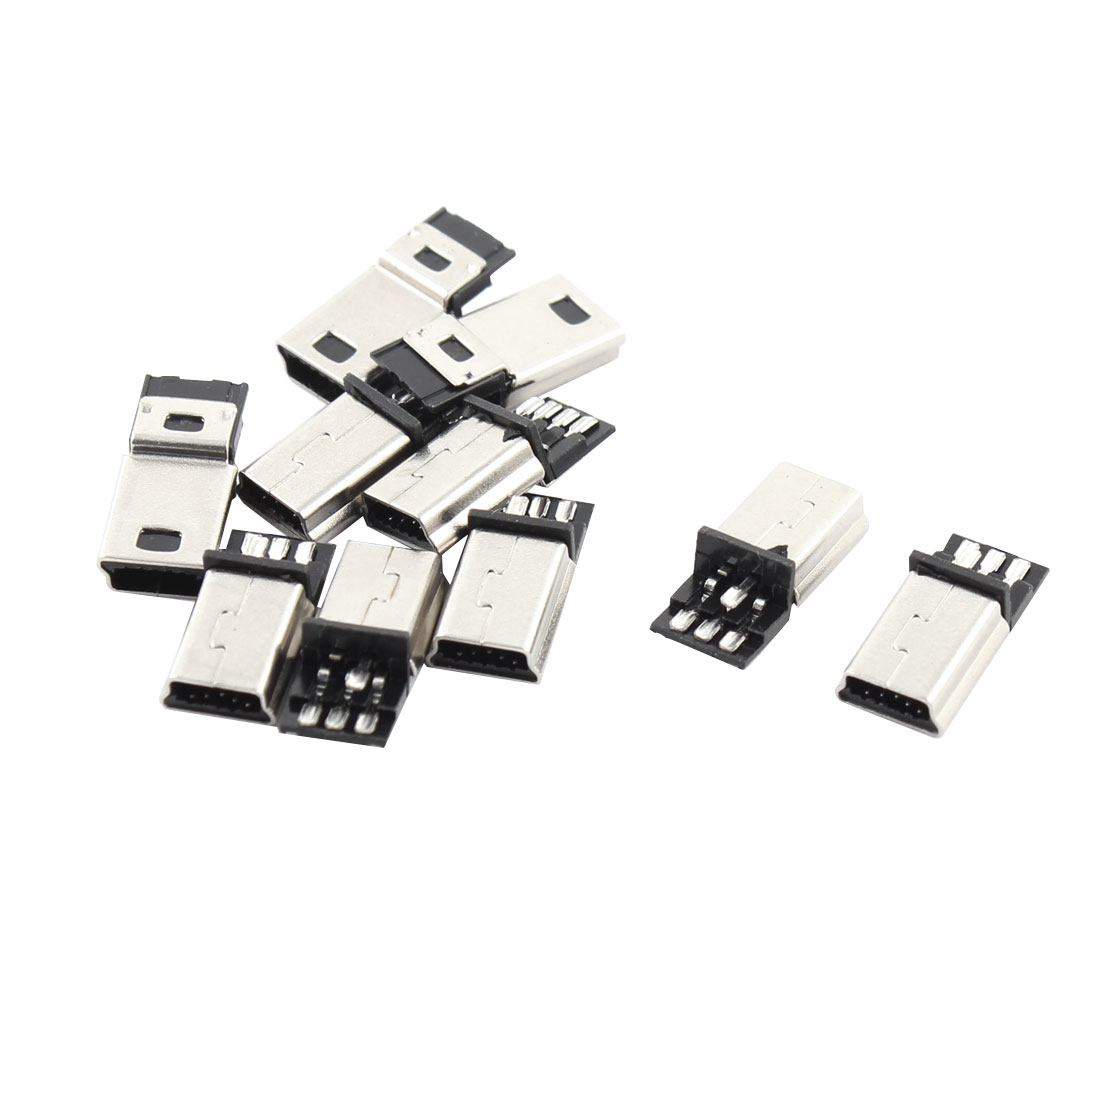 10 Pcs Usb 5 Pin B Male Connector Port Solder Plug